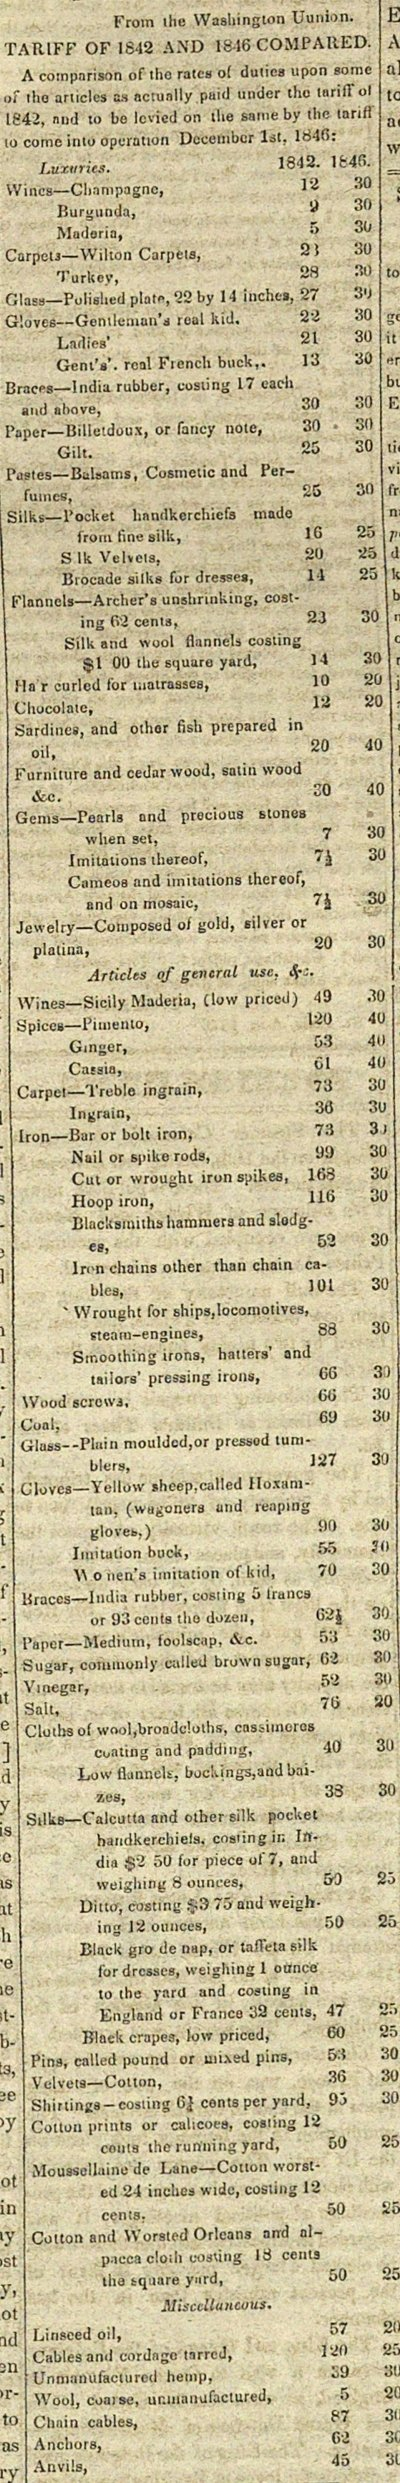 Tariff Of 1842 And 1846 Compared image